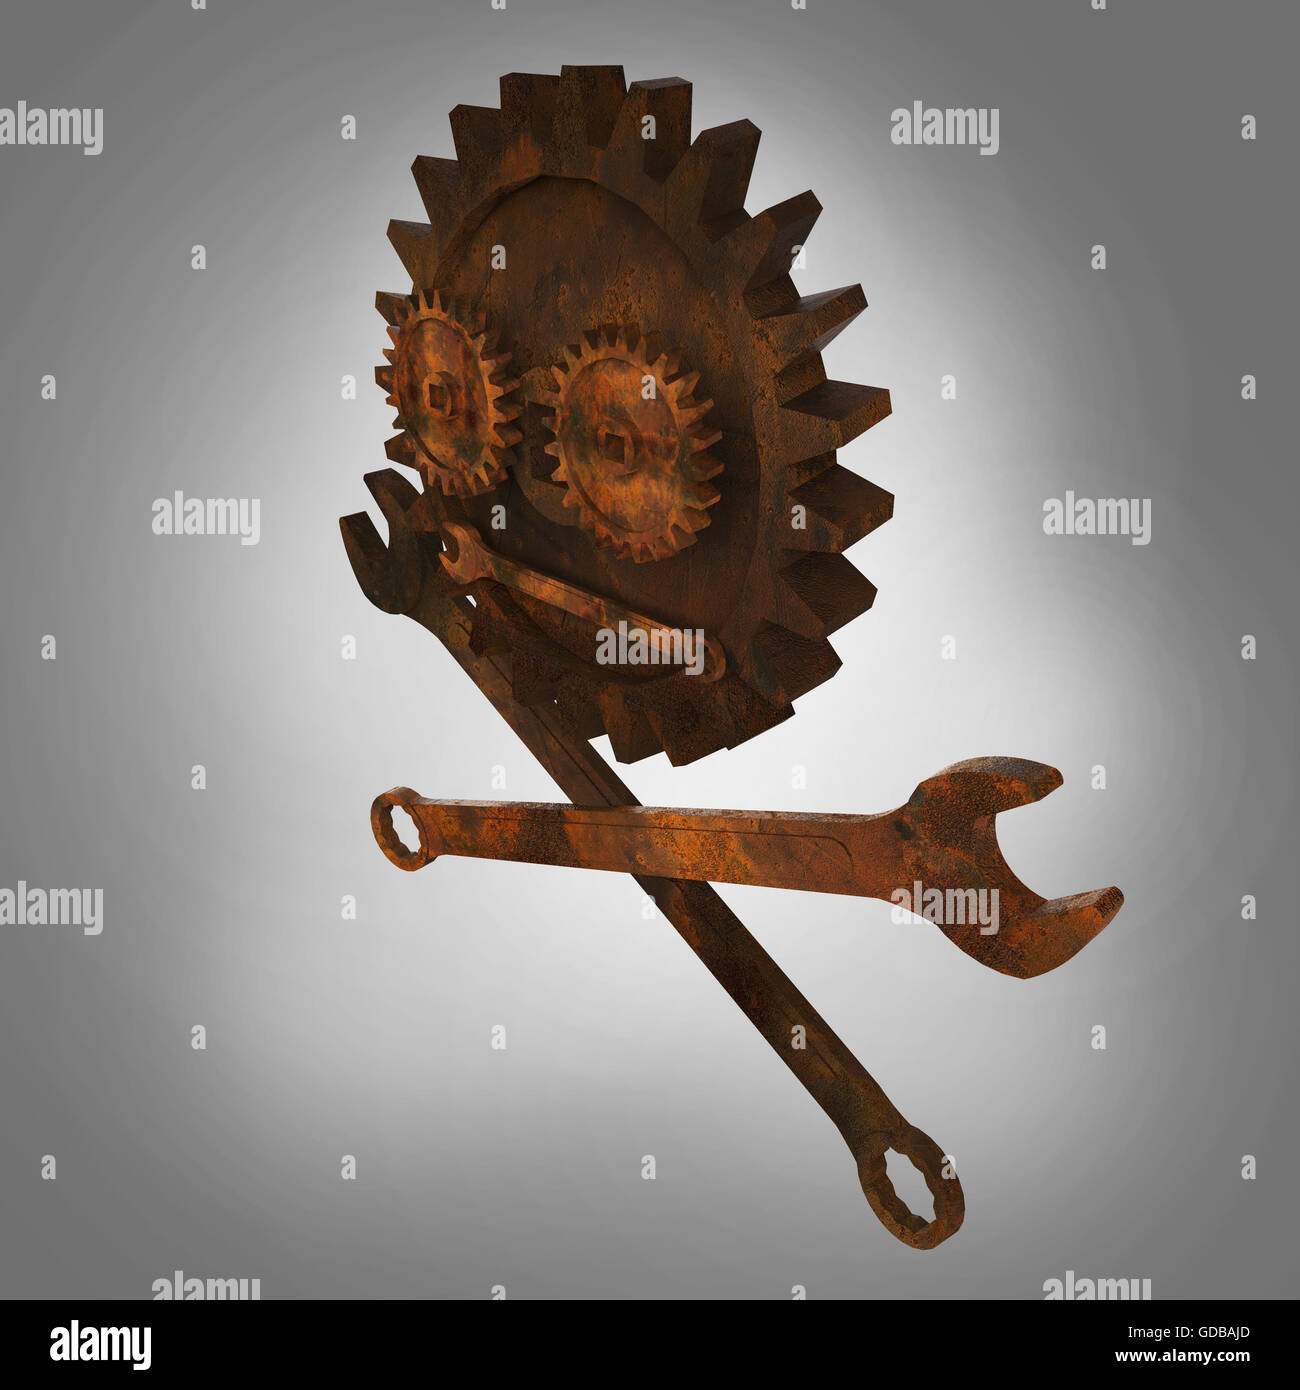 Jolly rodger made of rusty wrenches and gearwheels, fallout post apocalyptic style mechanic emblem render side view - Stock Image